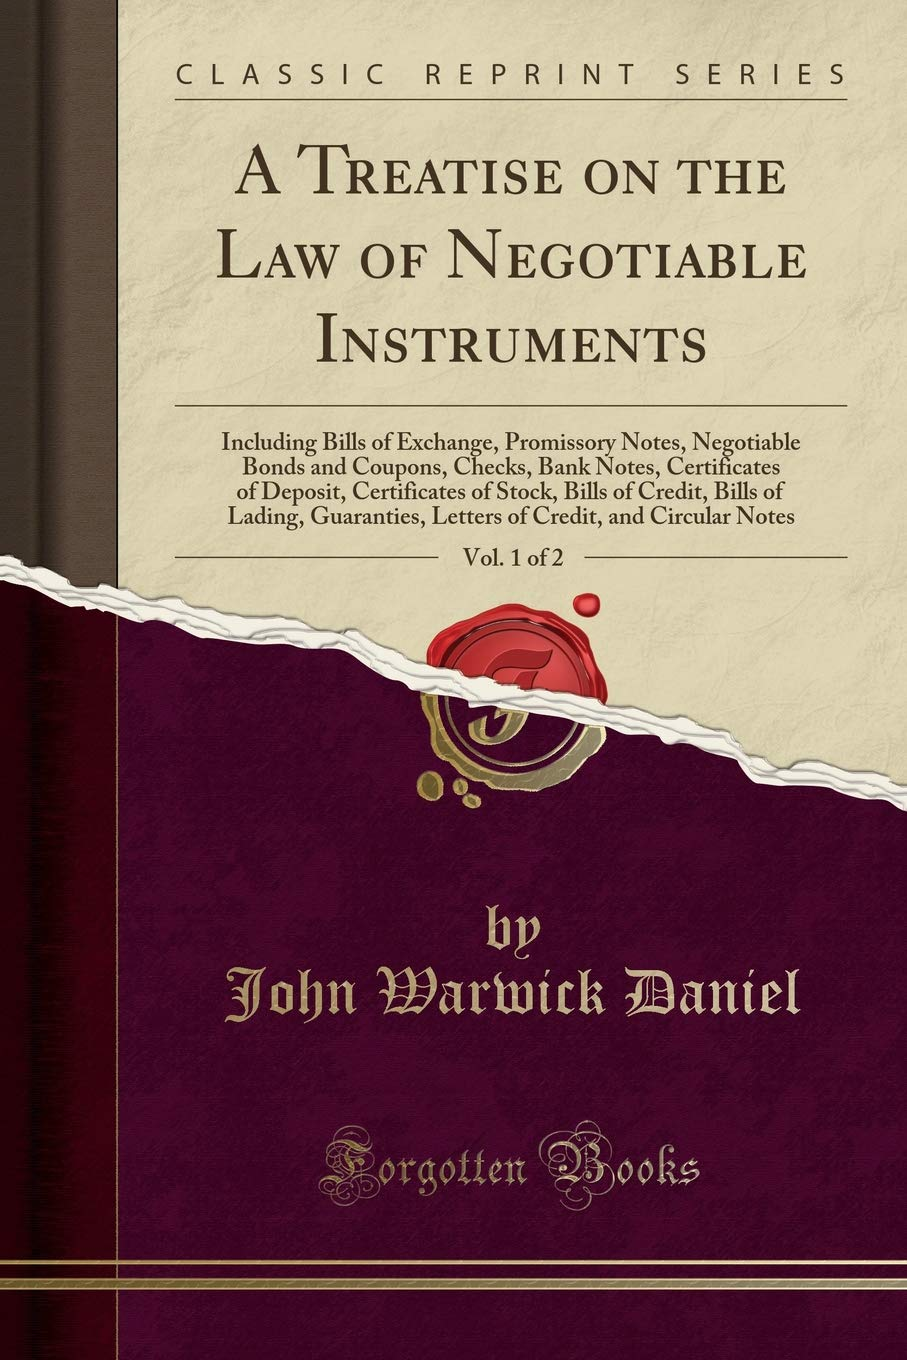 A Treatise on the Law of Negotiable Instruments, Vol. 1 of 2: Including Bills of Exchange, Promissory Notes, Negotiable Bonds and Coupons, Checks, ... of Credit, Bills of Lading, Guaranties, Le ebook